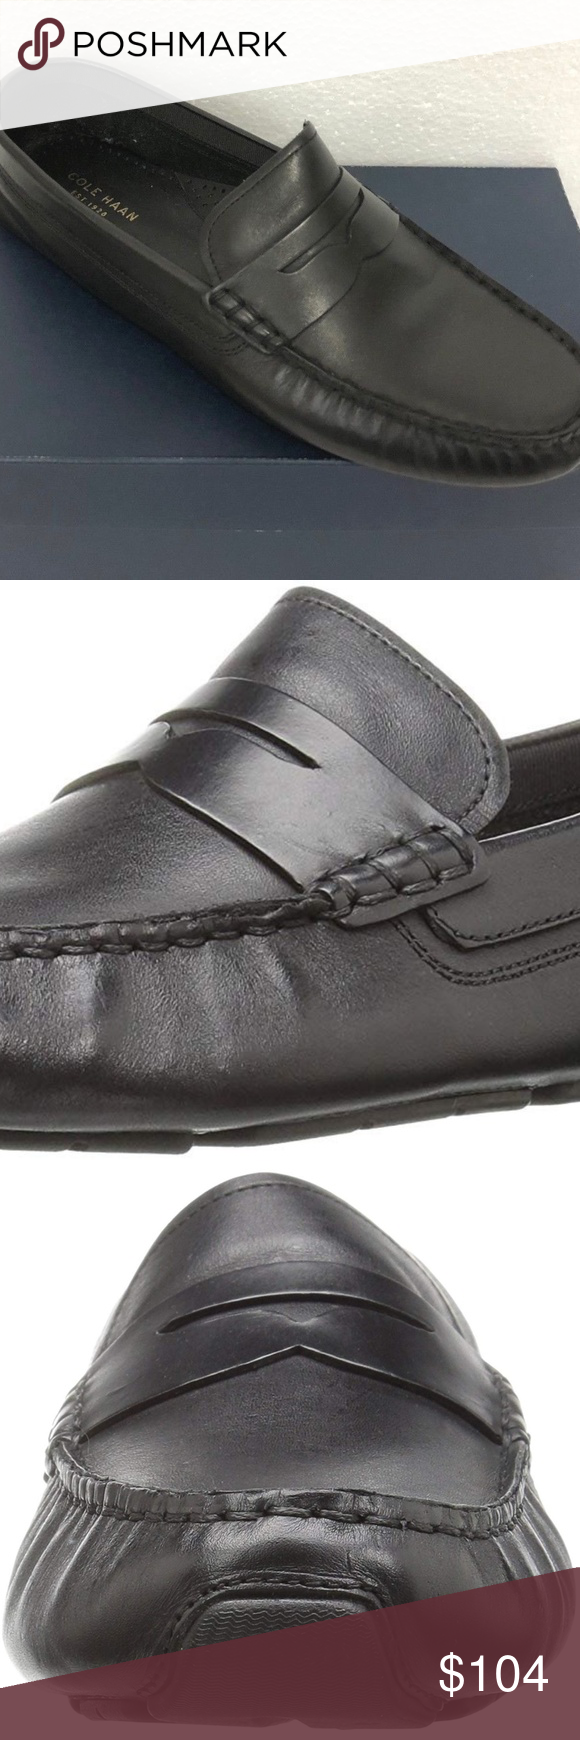 6ad602b4947 Cole Haan women rodeo driver penny loafers black 8 STYLE NAME  RODEO PENNY  DRIVER STYLE